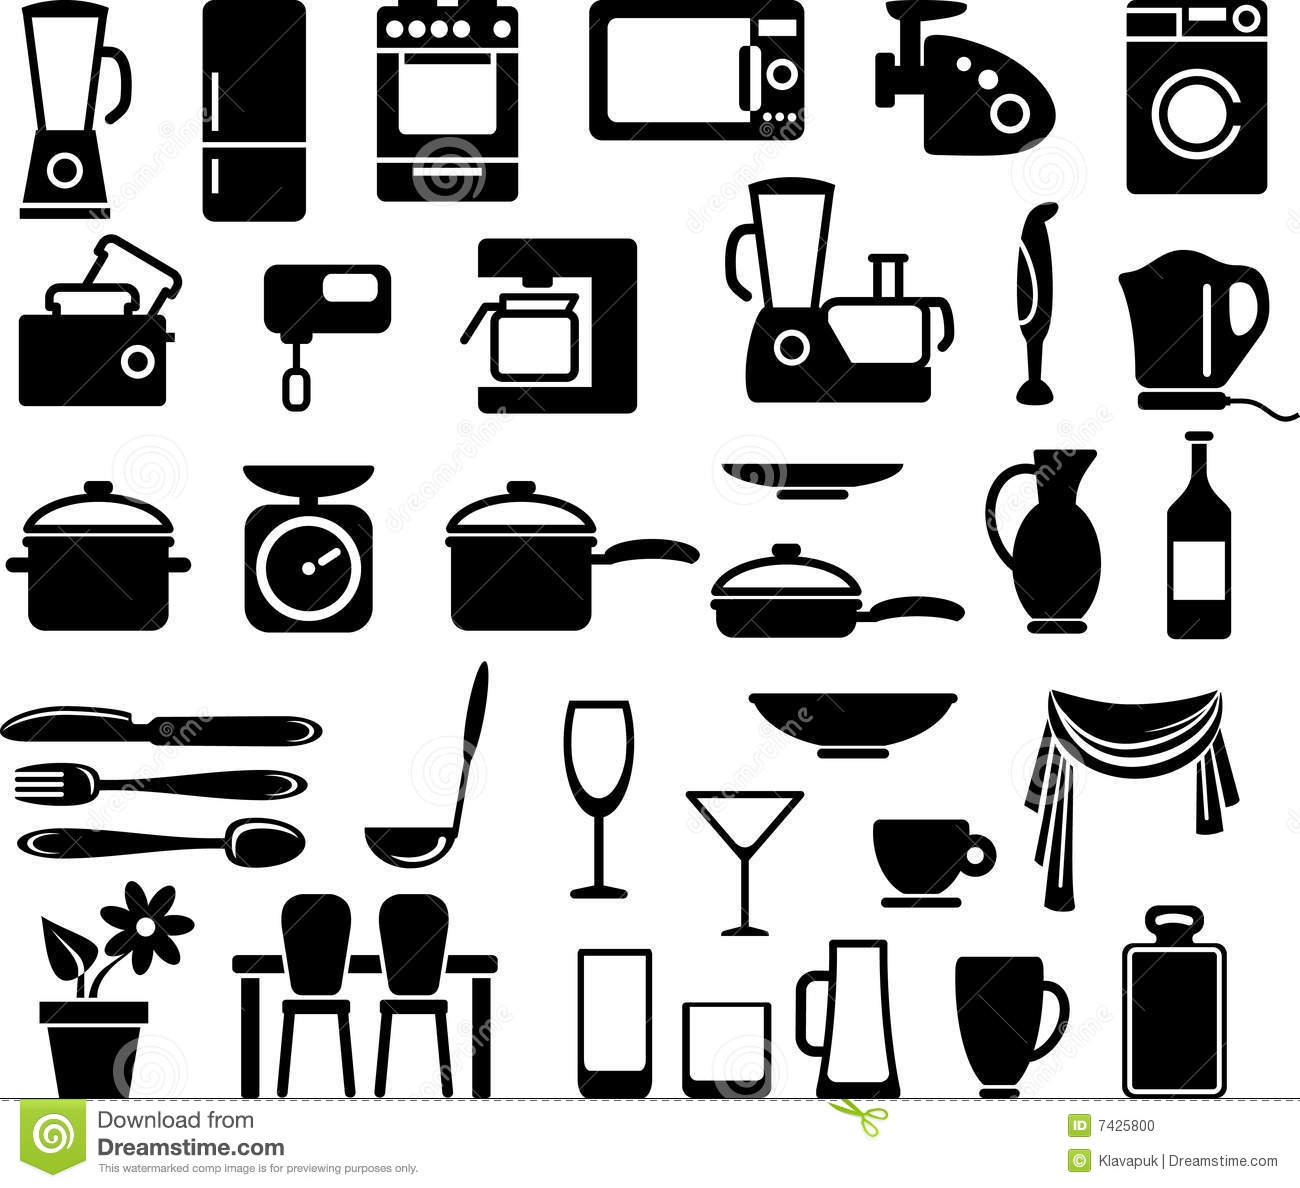 Kitchen appliance clipart free.